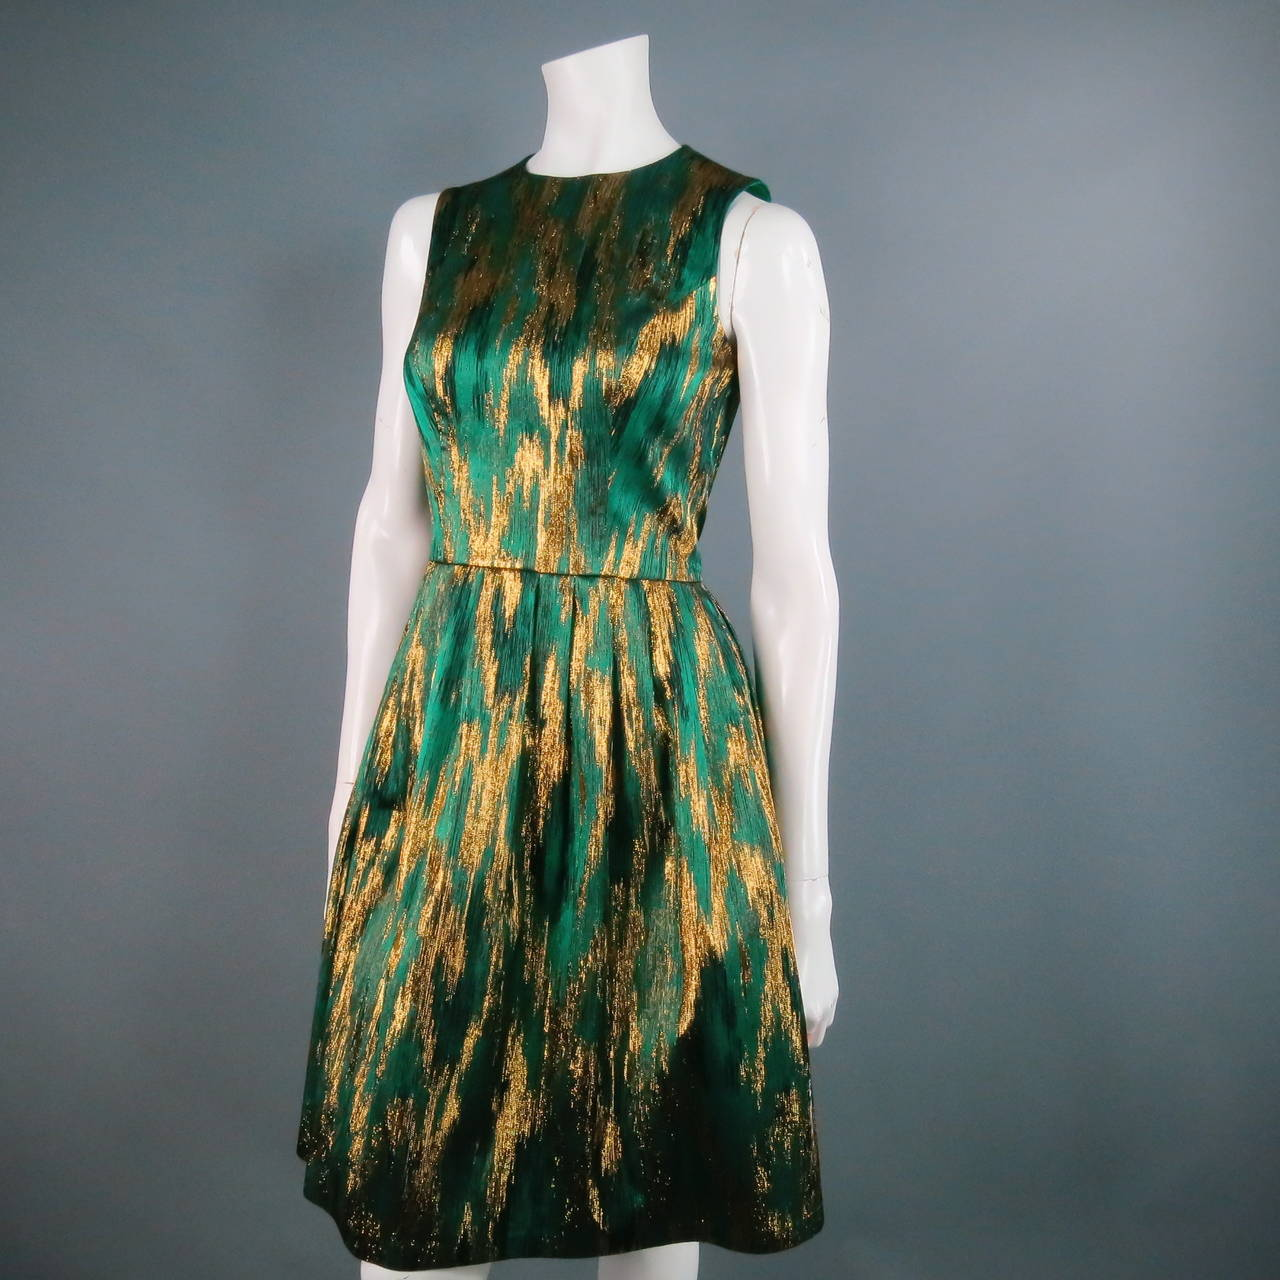 MICHAEL KORS Size 4 Green Polyester Blend Cocktail Dress 4